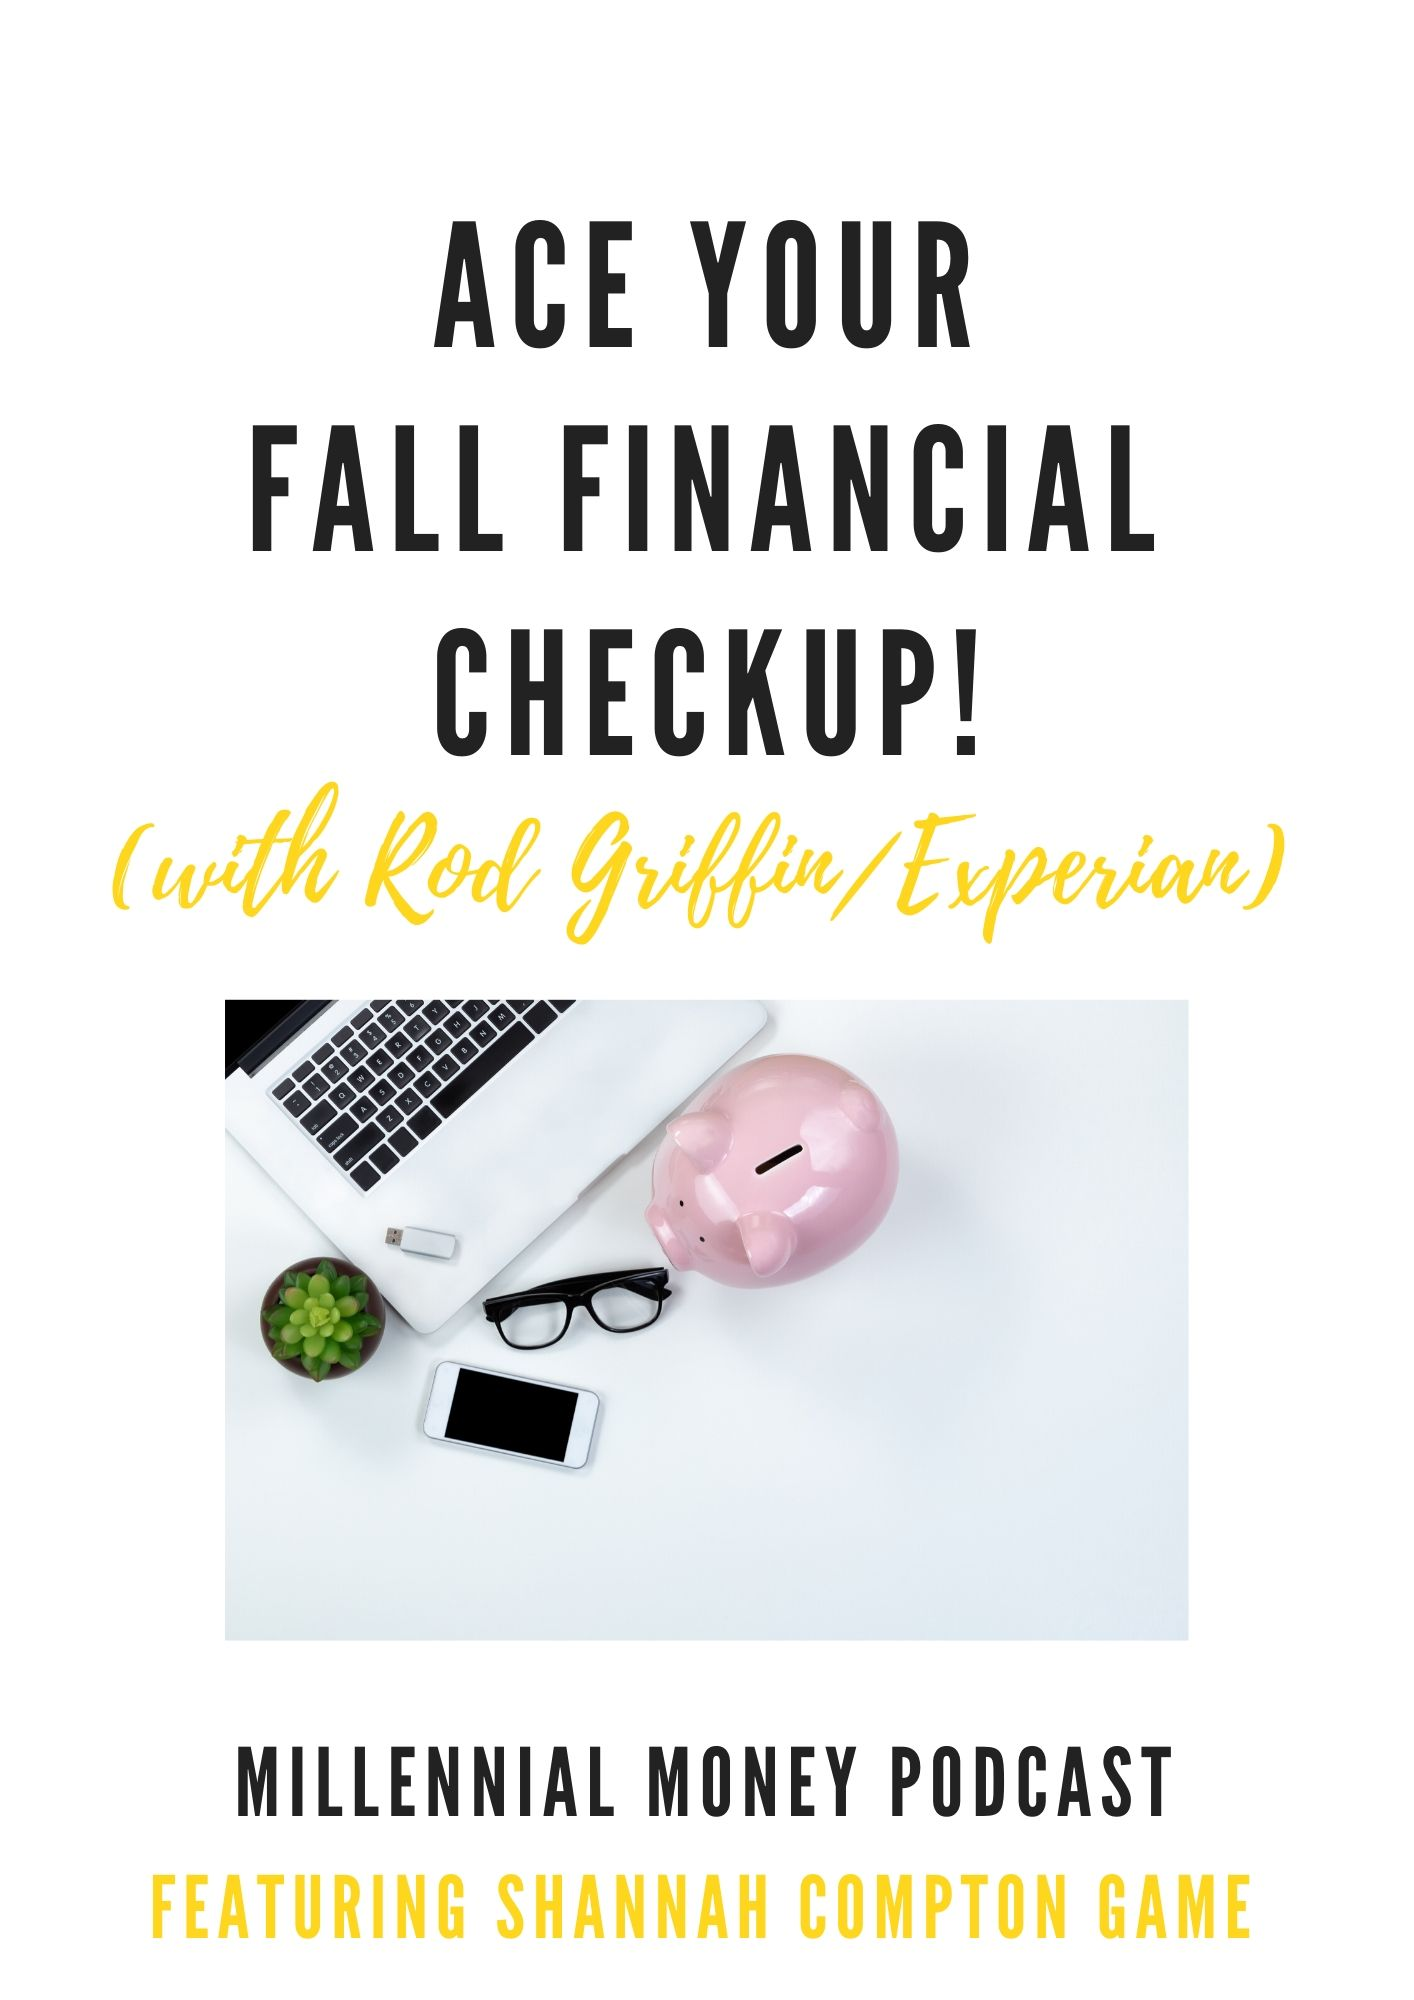 Ace Your Fall Financial Checkup